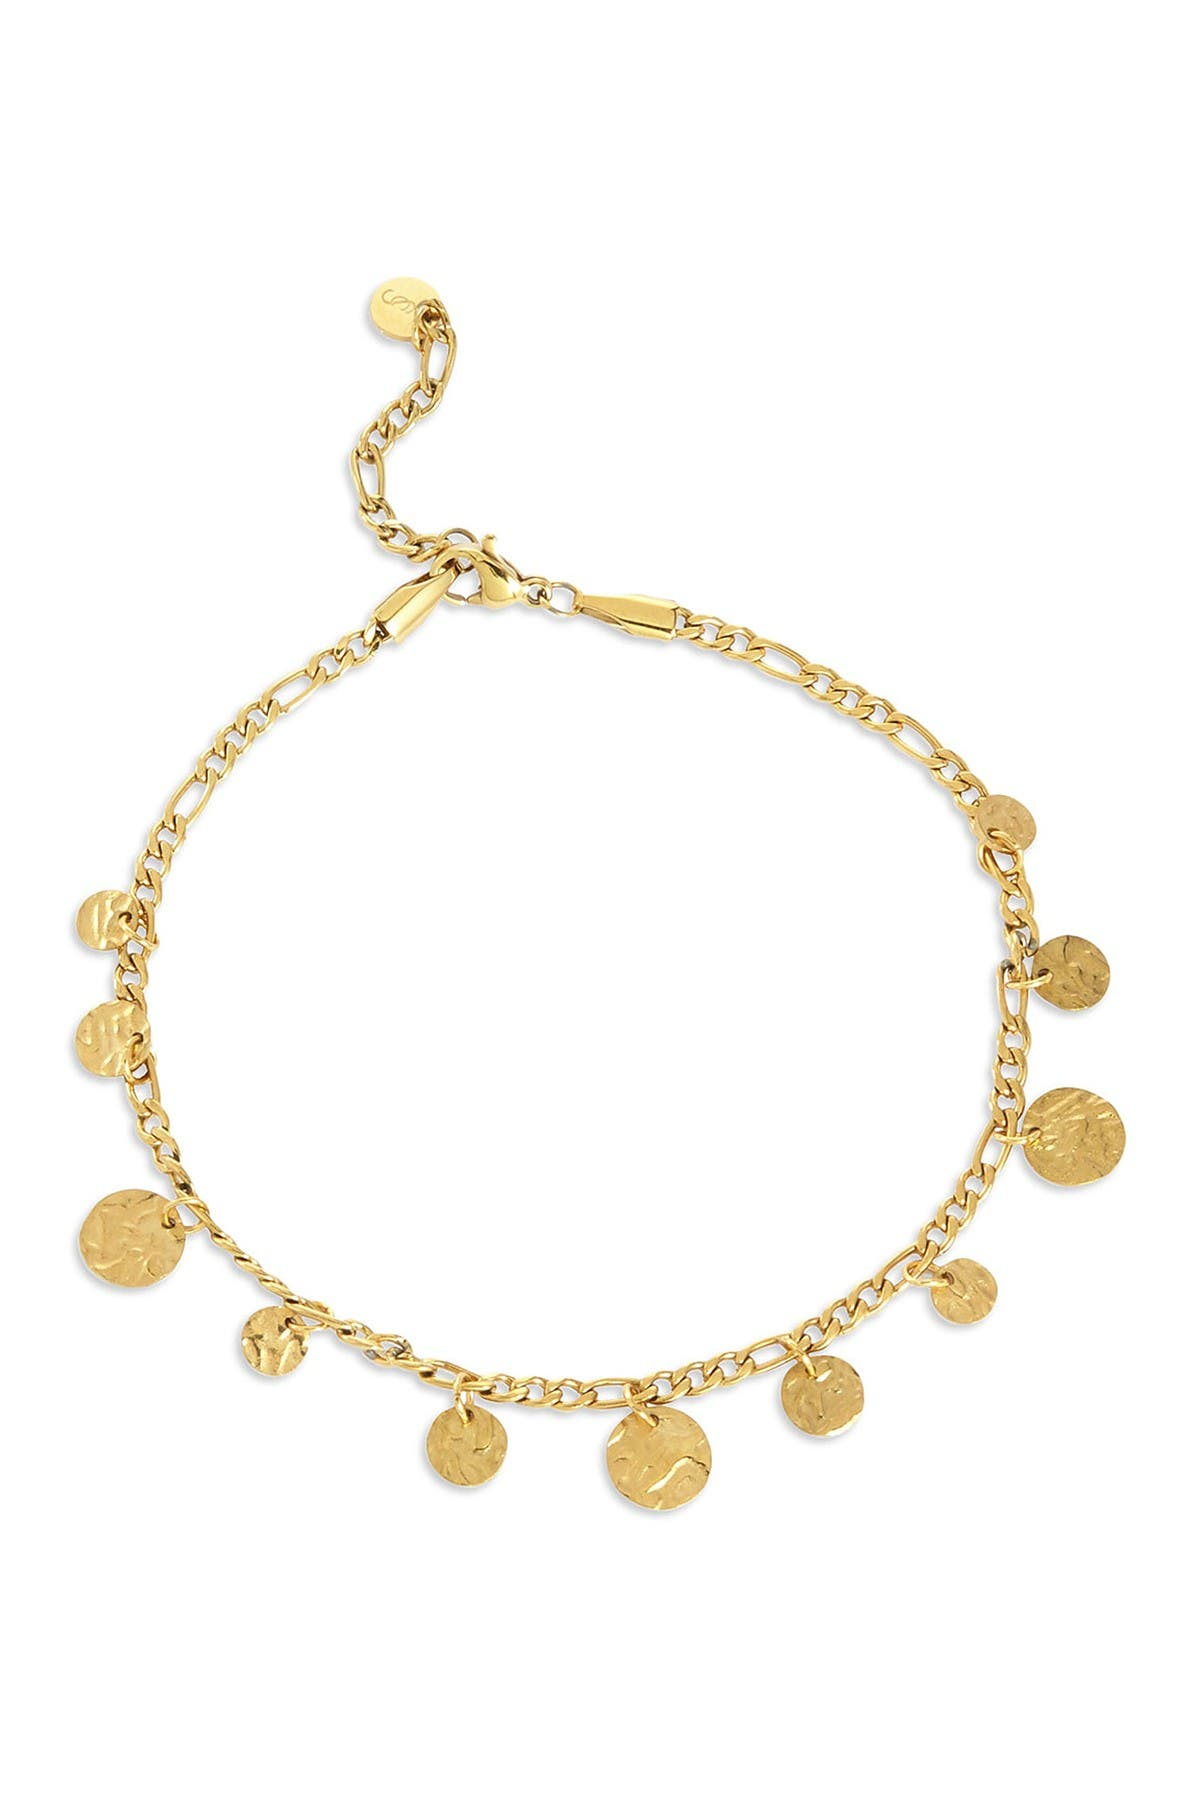 Image of Savvy Cie 18K Gold Plated Coin Anklet